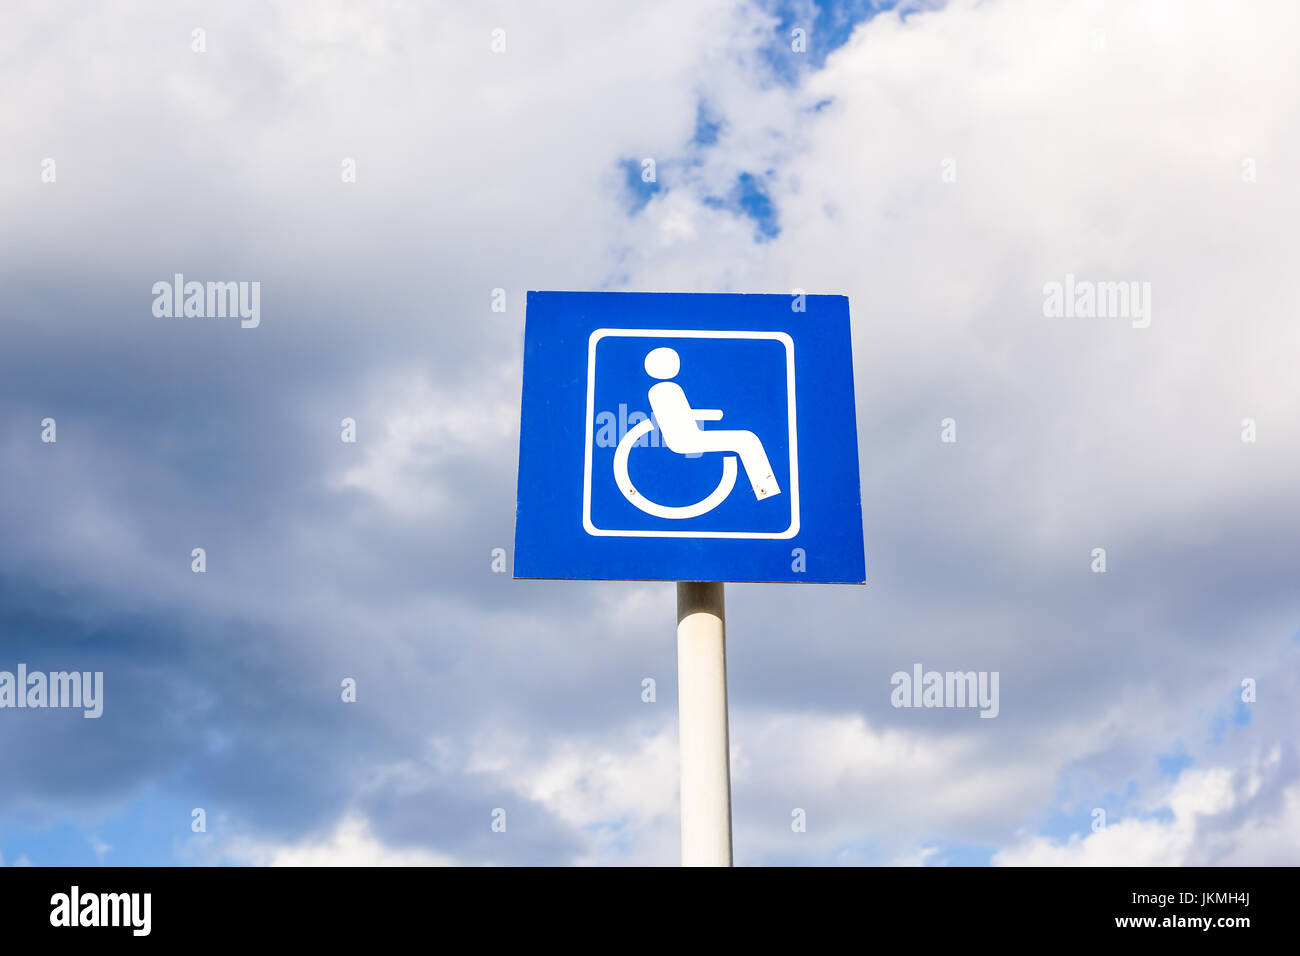 Parking sign for disabled people Stock Photo